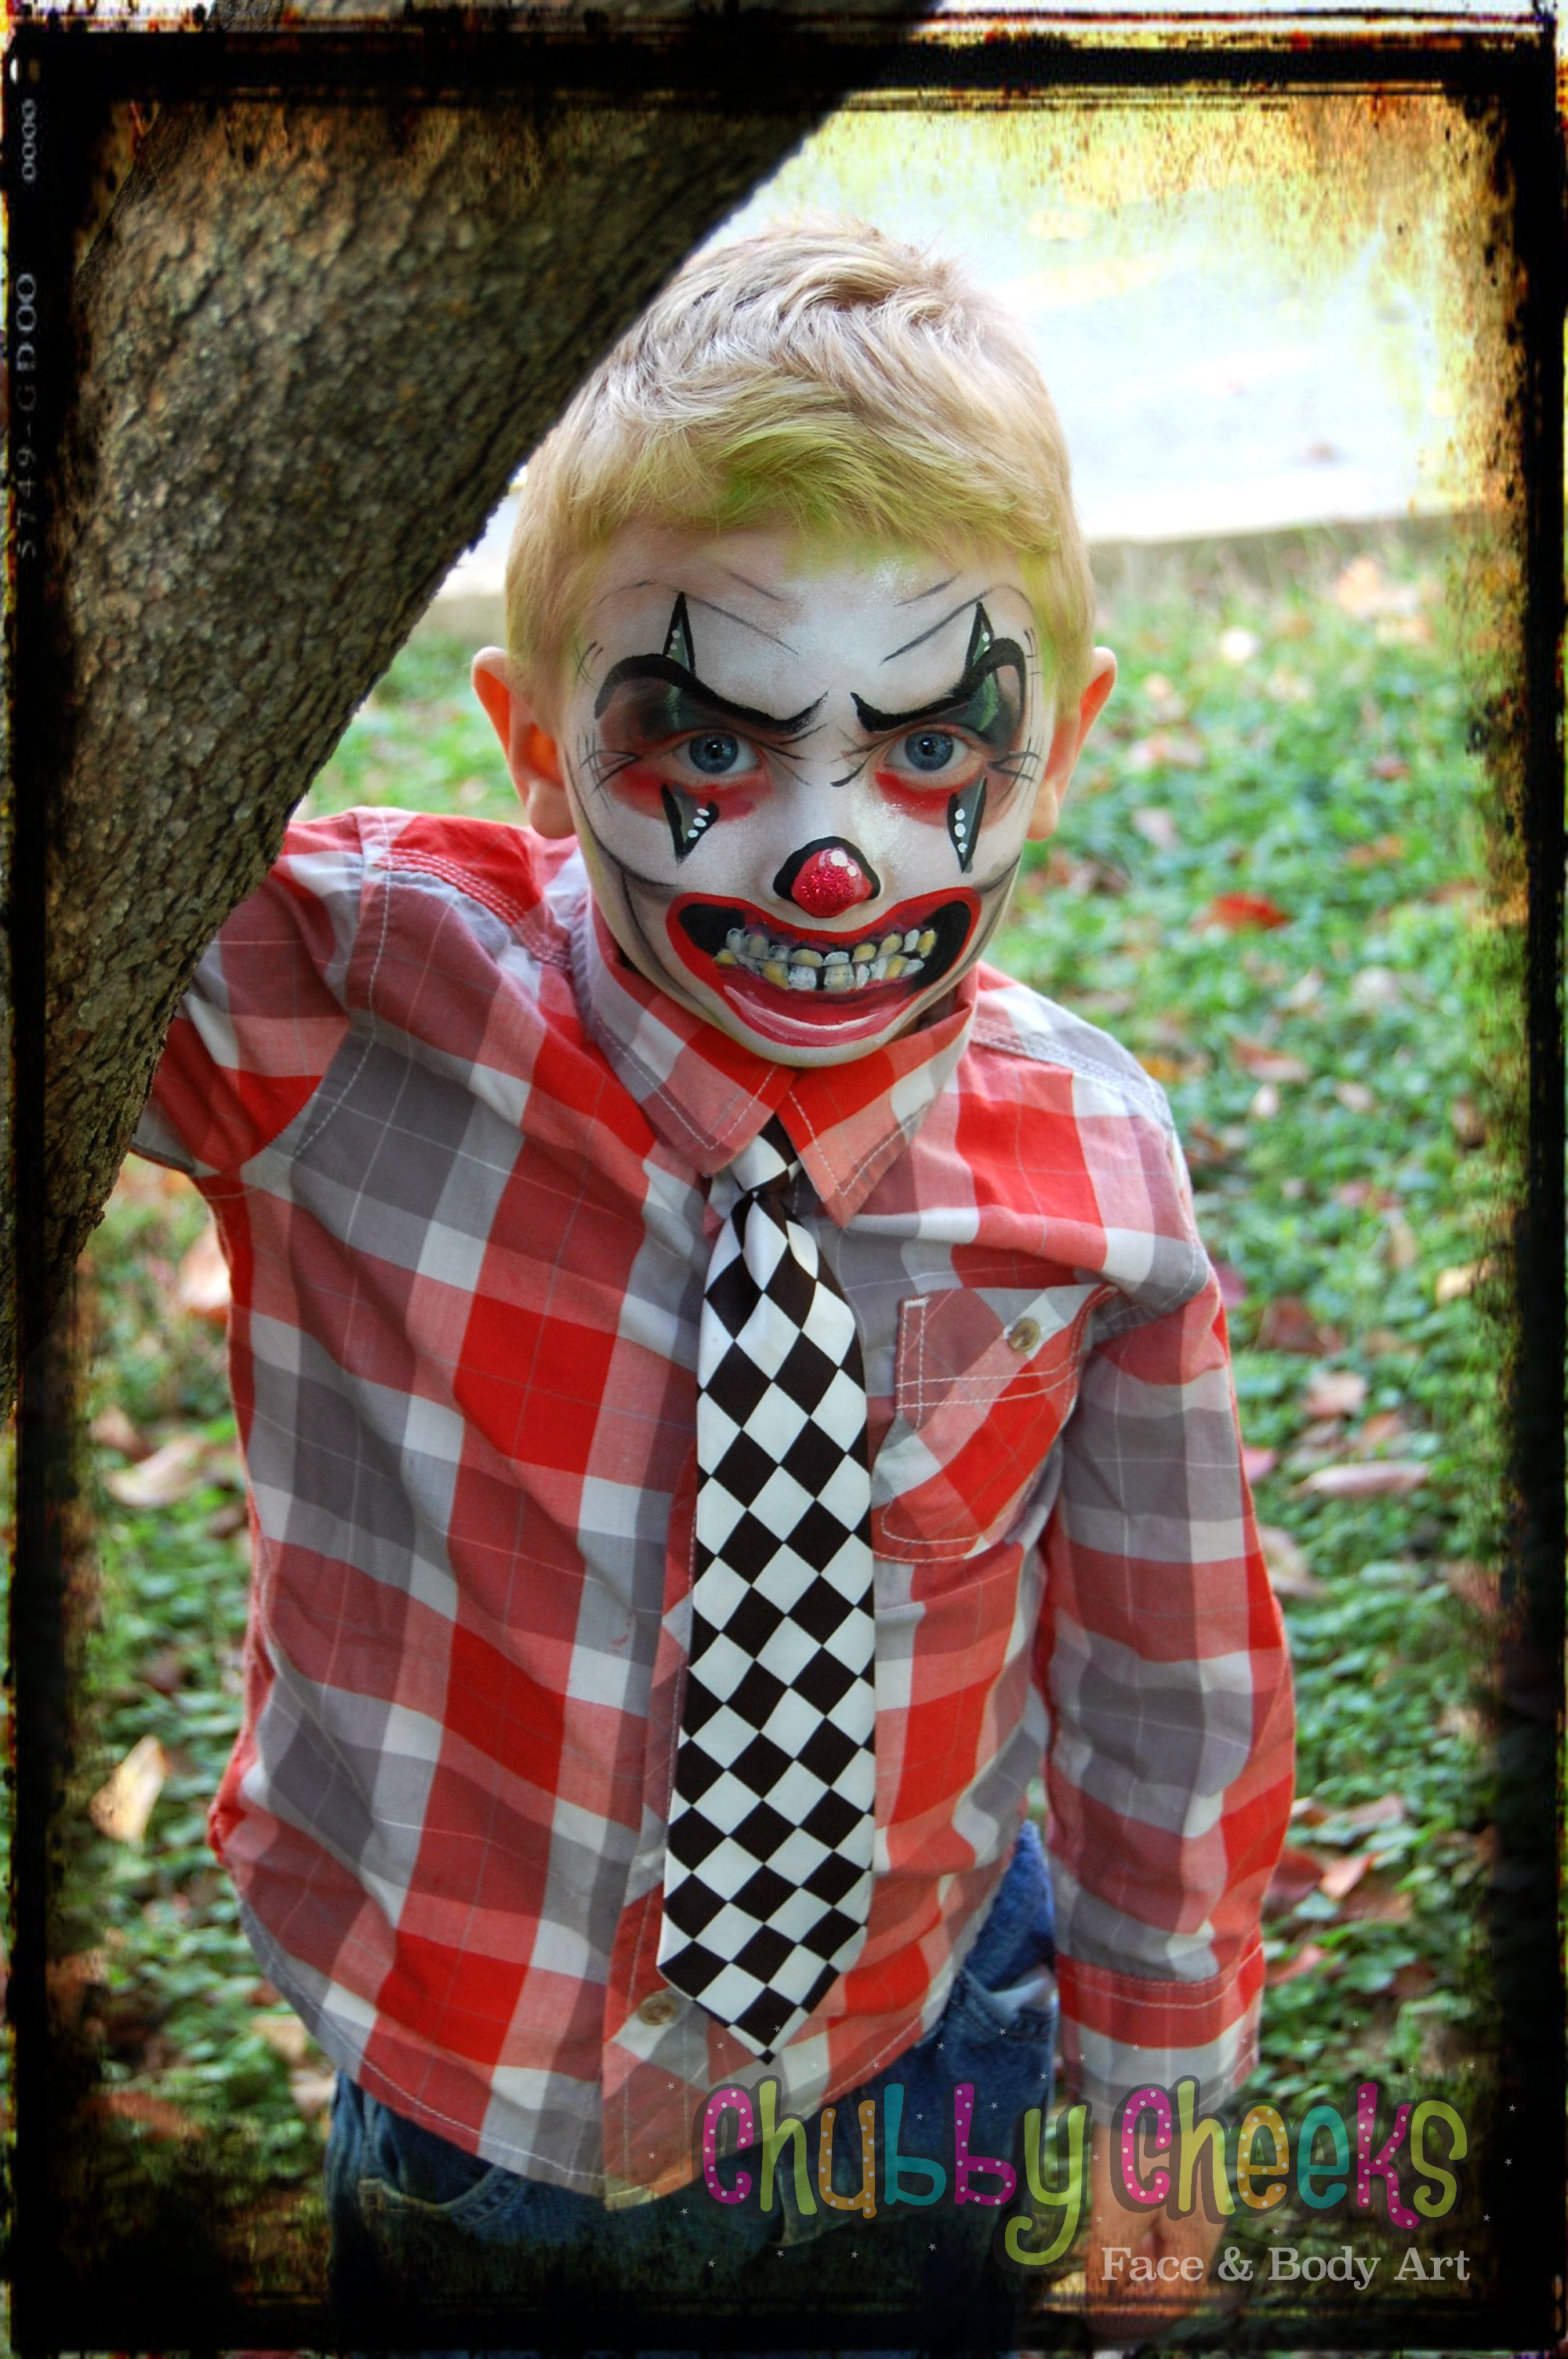 chubbycheeksfaba scaryclown clown scary halloween facepaint indiana face - Halloween Indiana